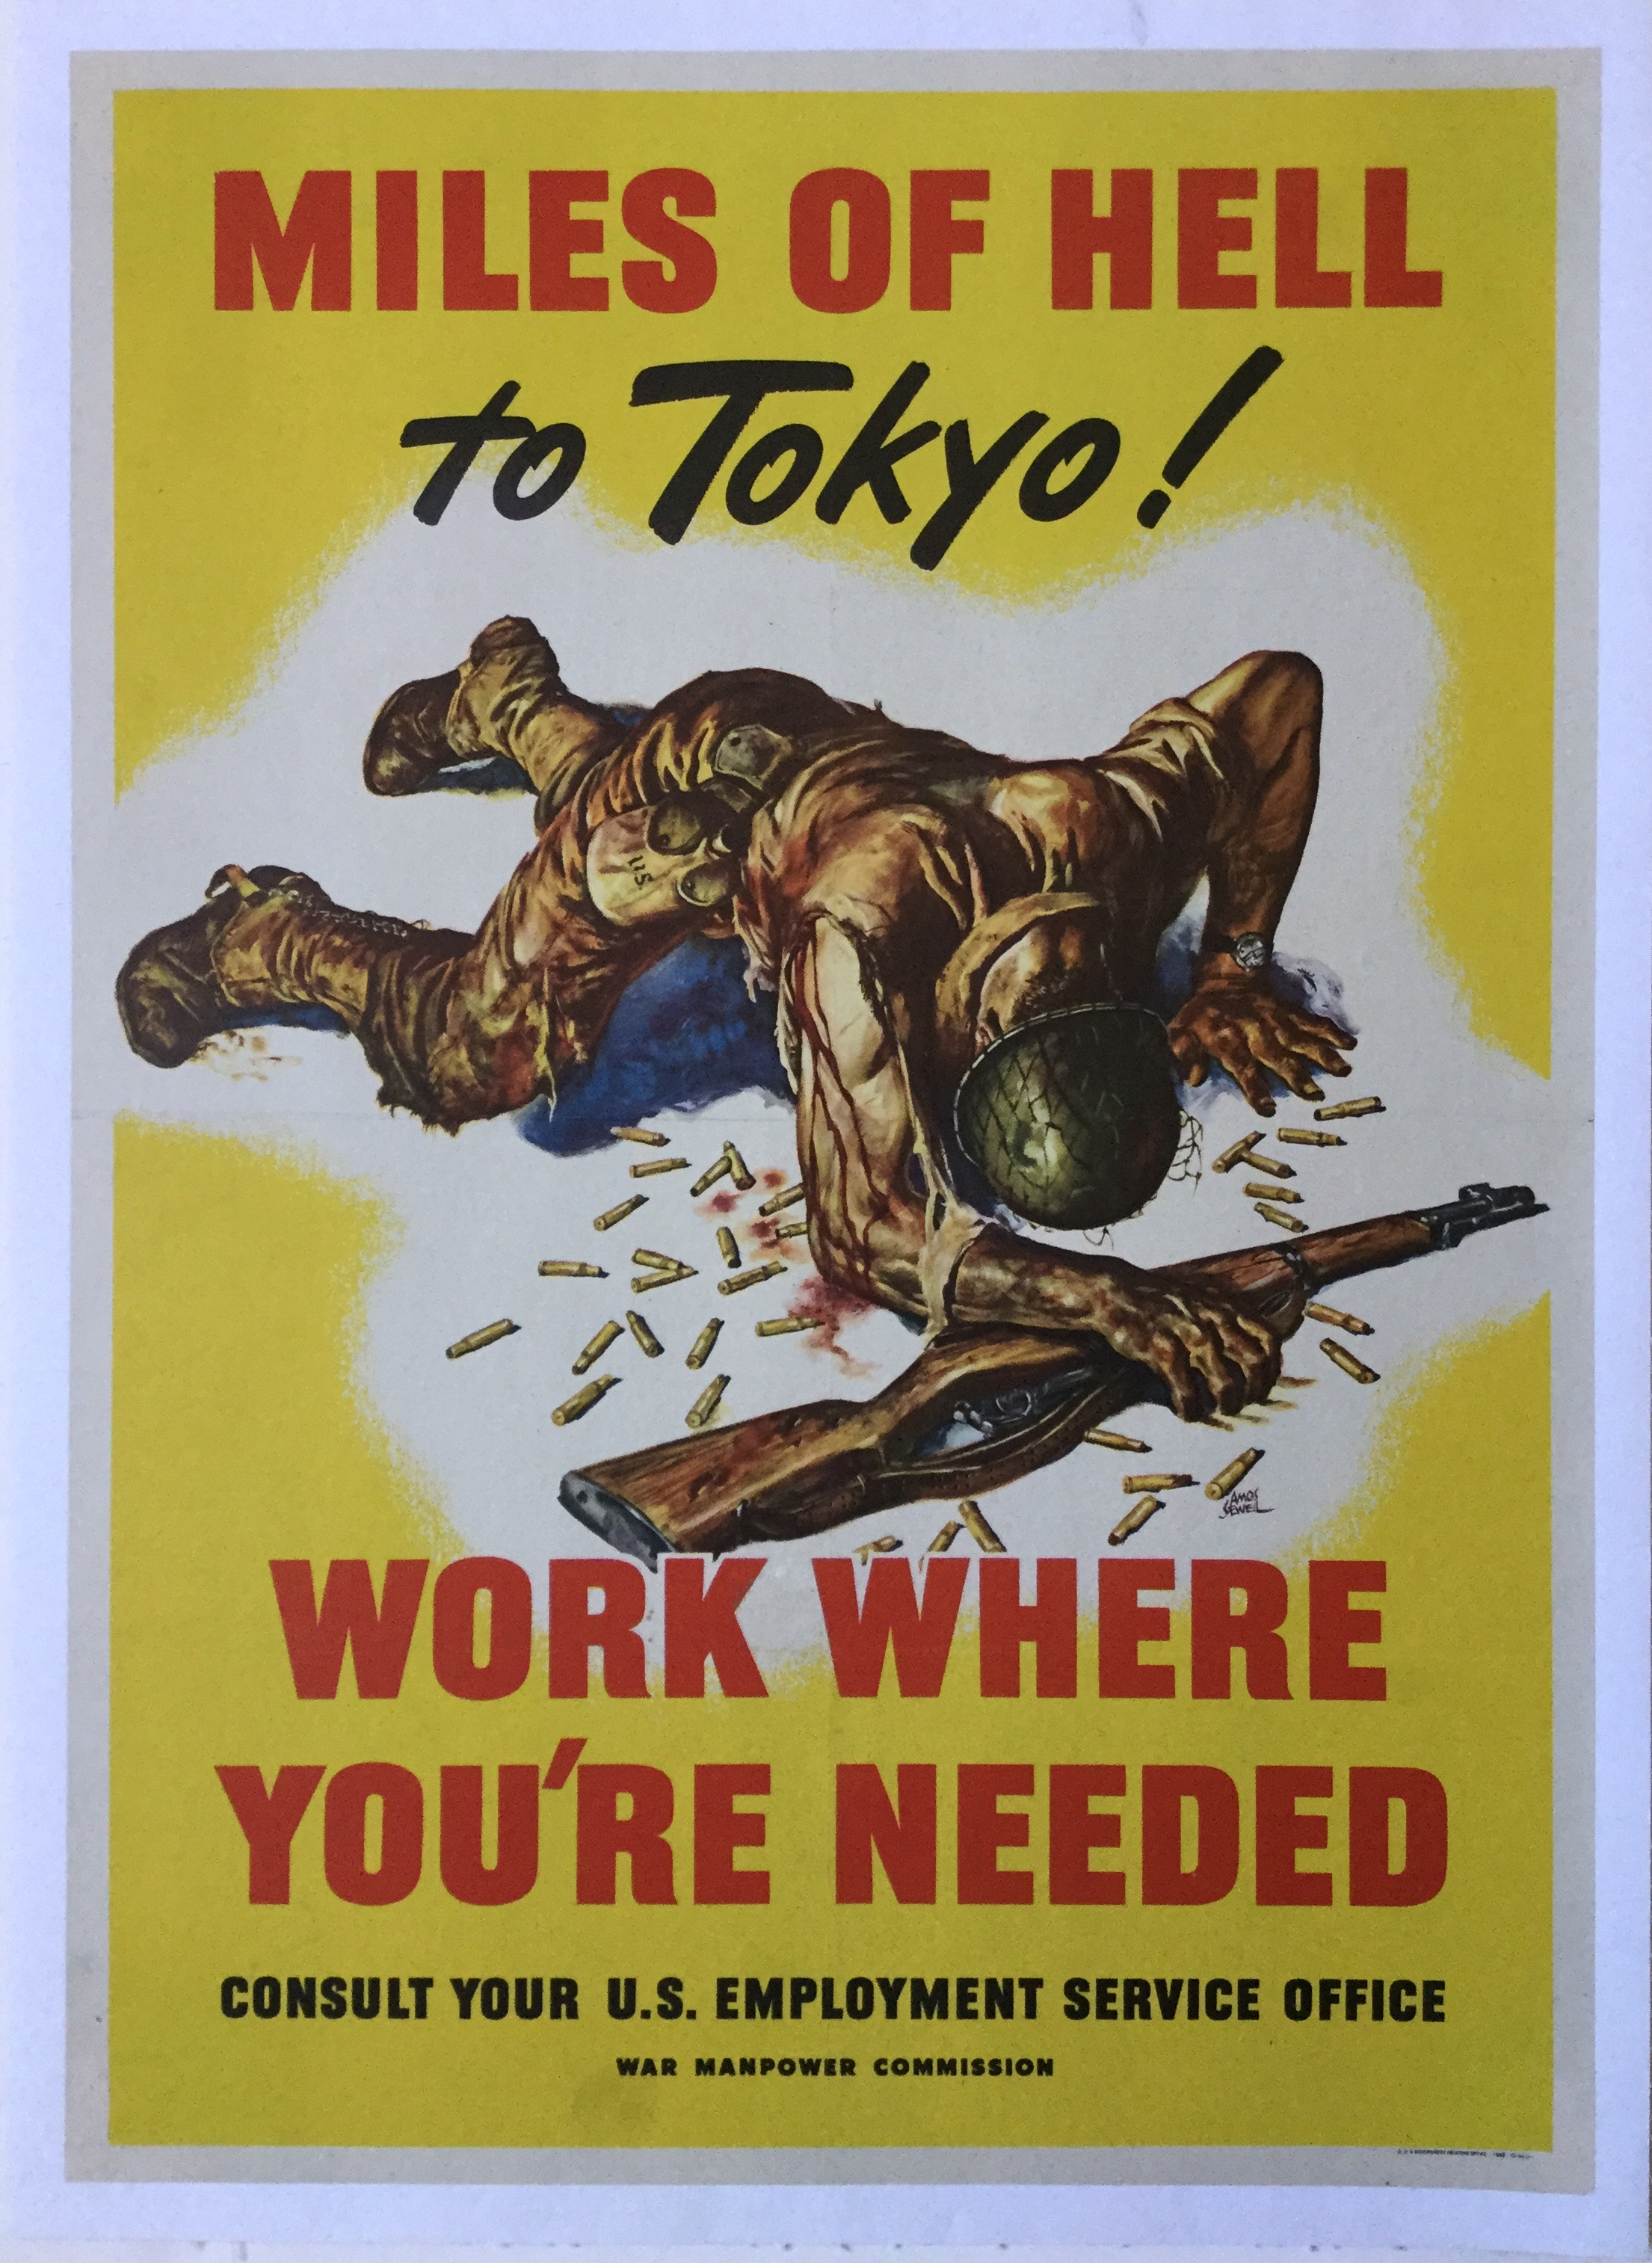 YK0182MILES OF HELL TO TOKYO! WORK WHERE YOU'RE NEEDED